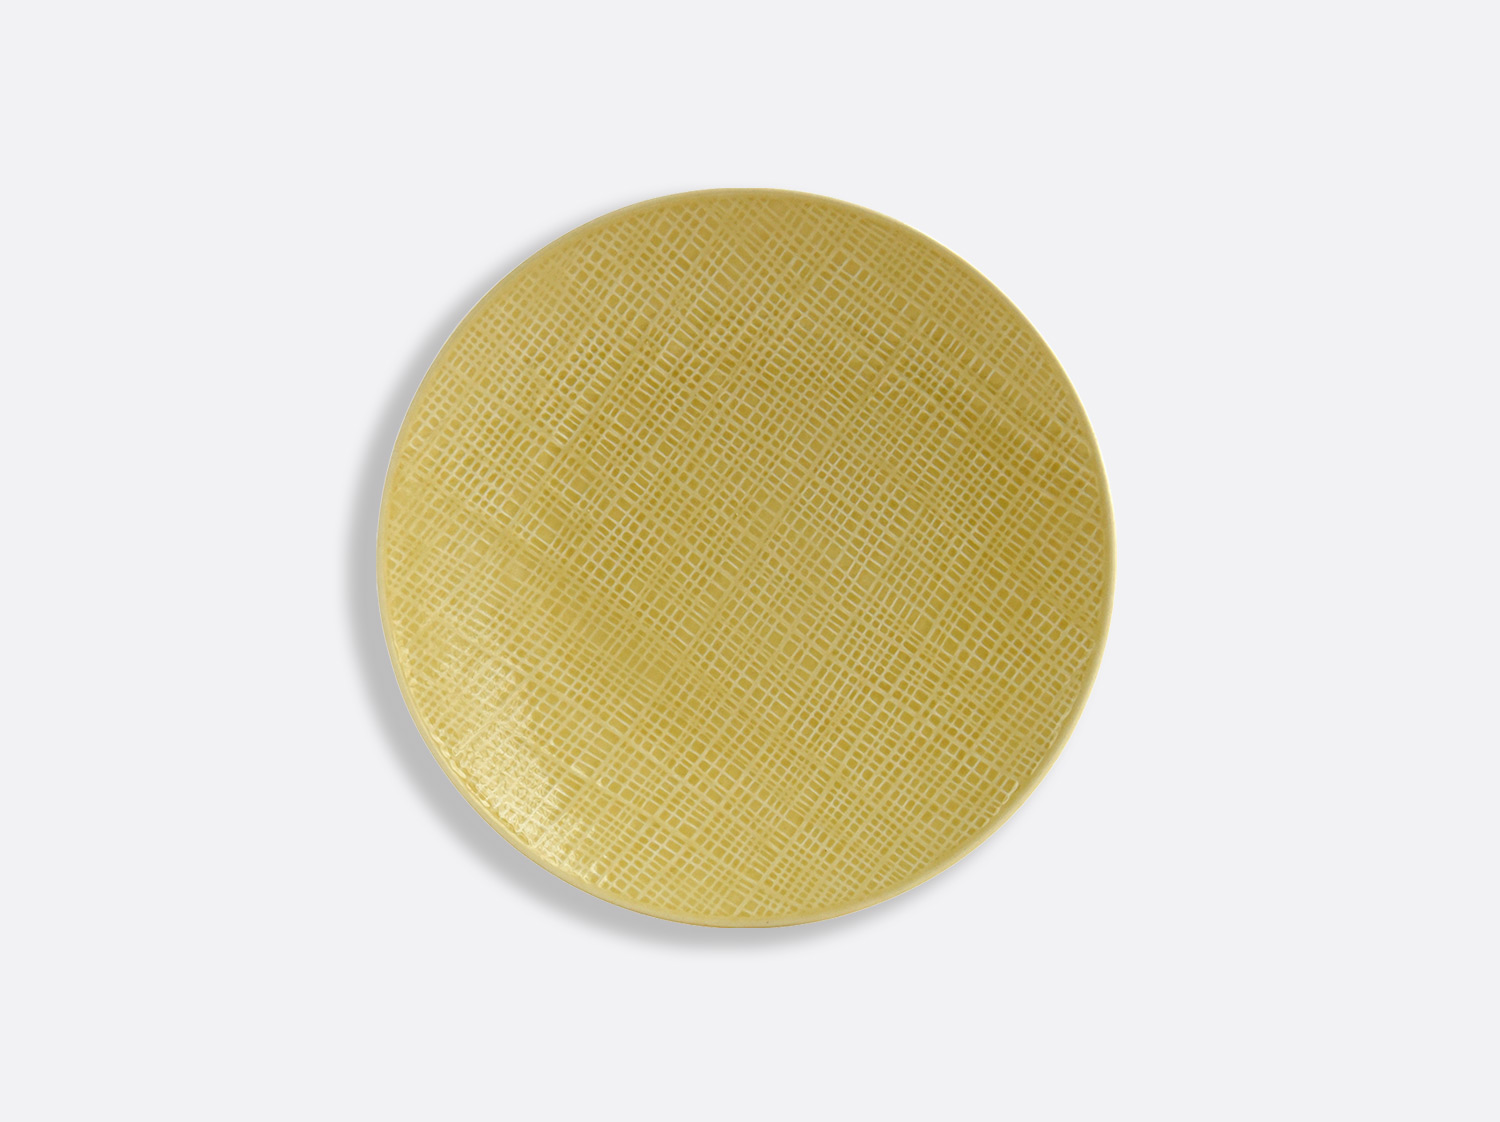 Assiette Jaune Paille 16 cm en porcelaine de la collection ORGANZA JAUNE PAILLE Bernardaud